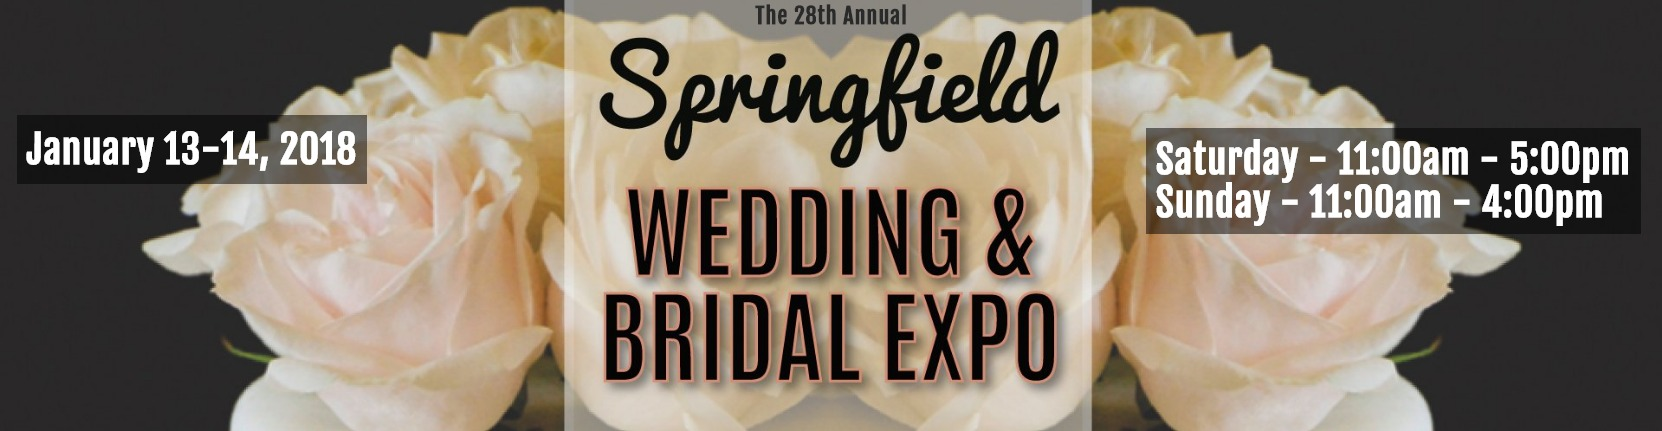 2018 Springfield MA Wedding & Bridal Show Sat 1/13 11am-5pm & Sun 1/14 11am- 4pm, produced by Jenks Productions.